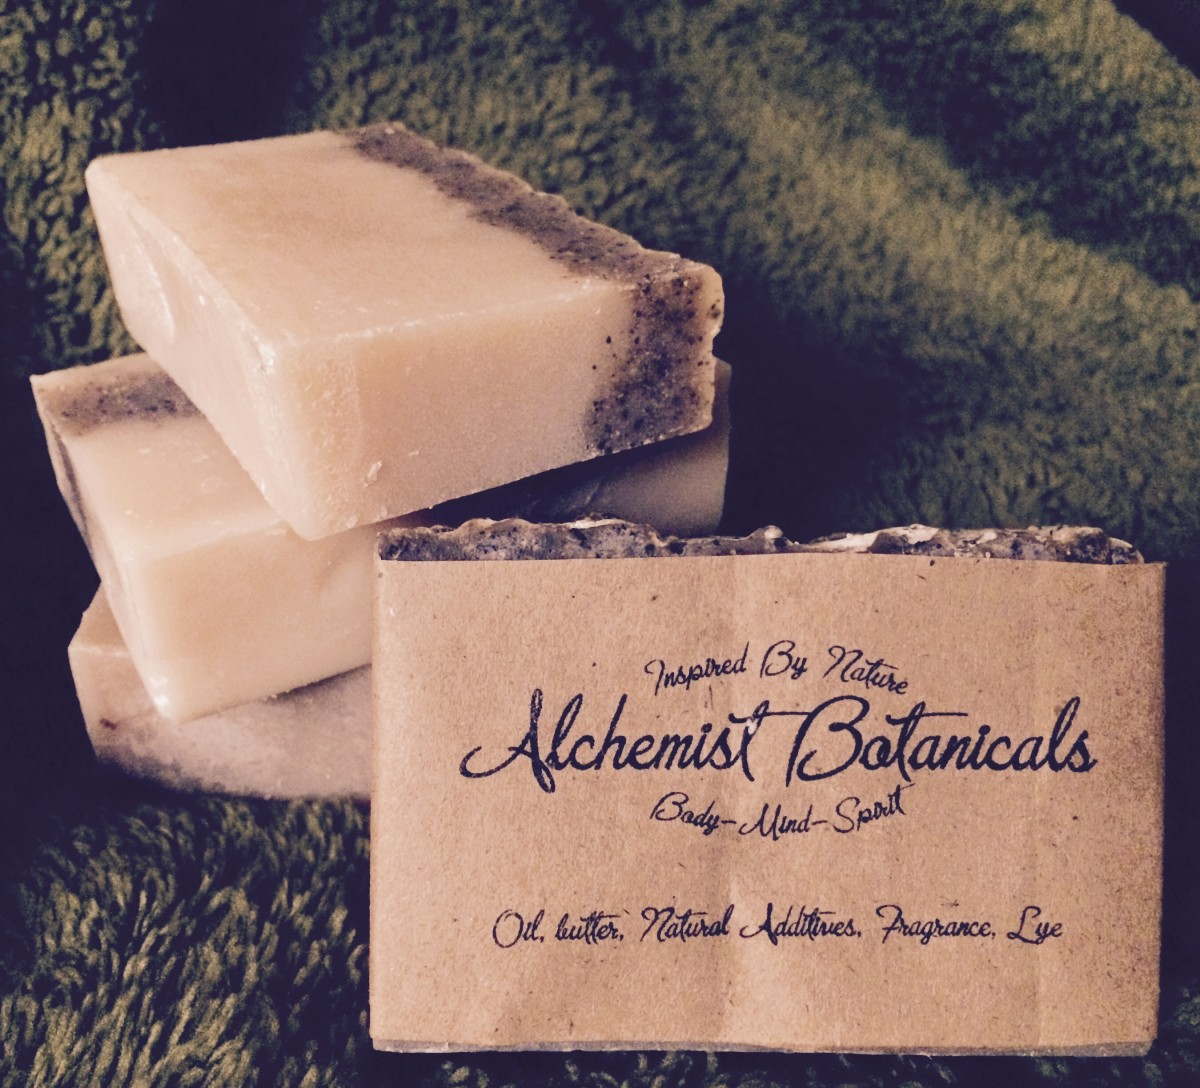 Bay rum and coffee soap that contains bay rum FO, lye, coffee, and coconut oil.